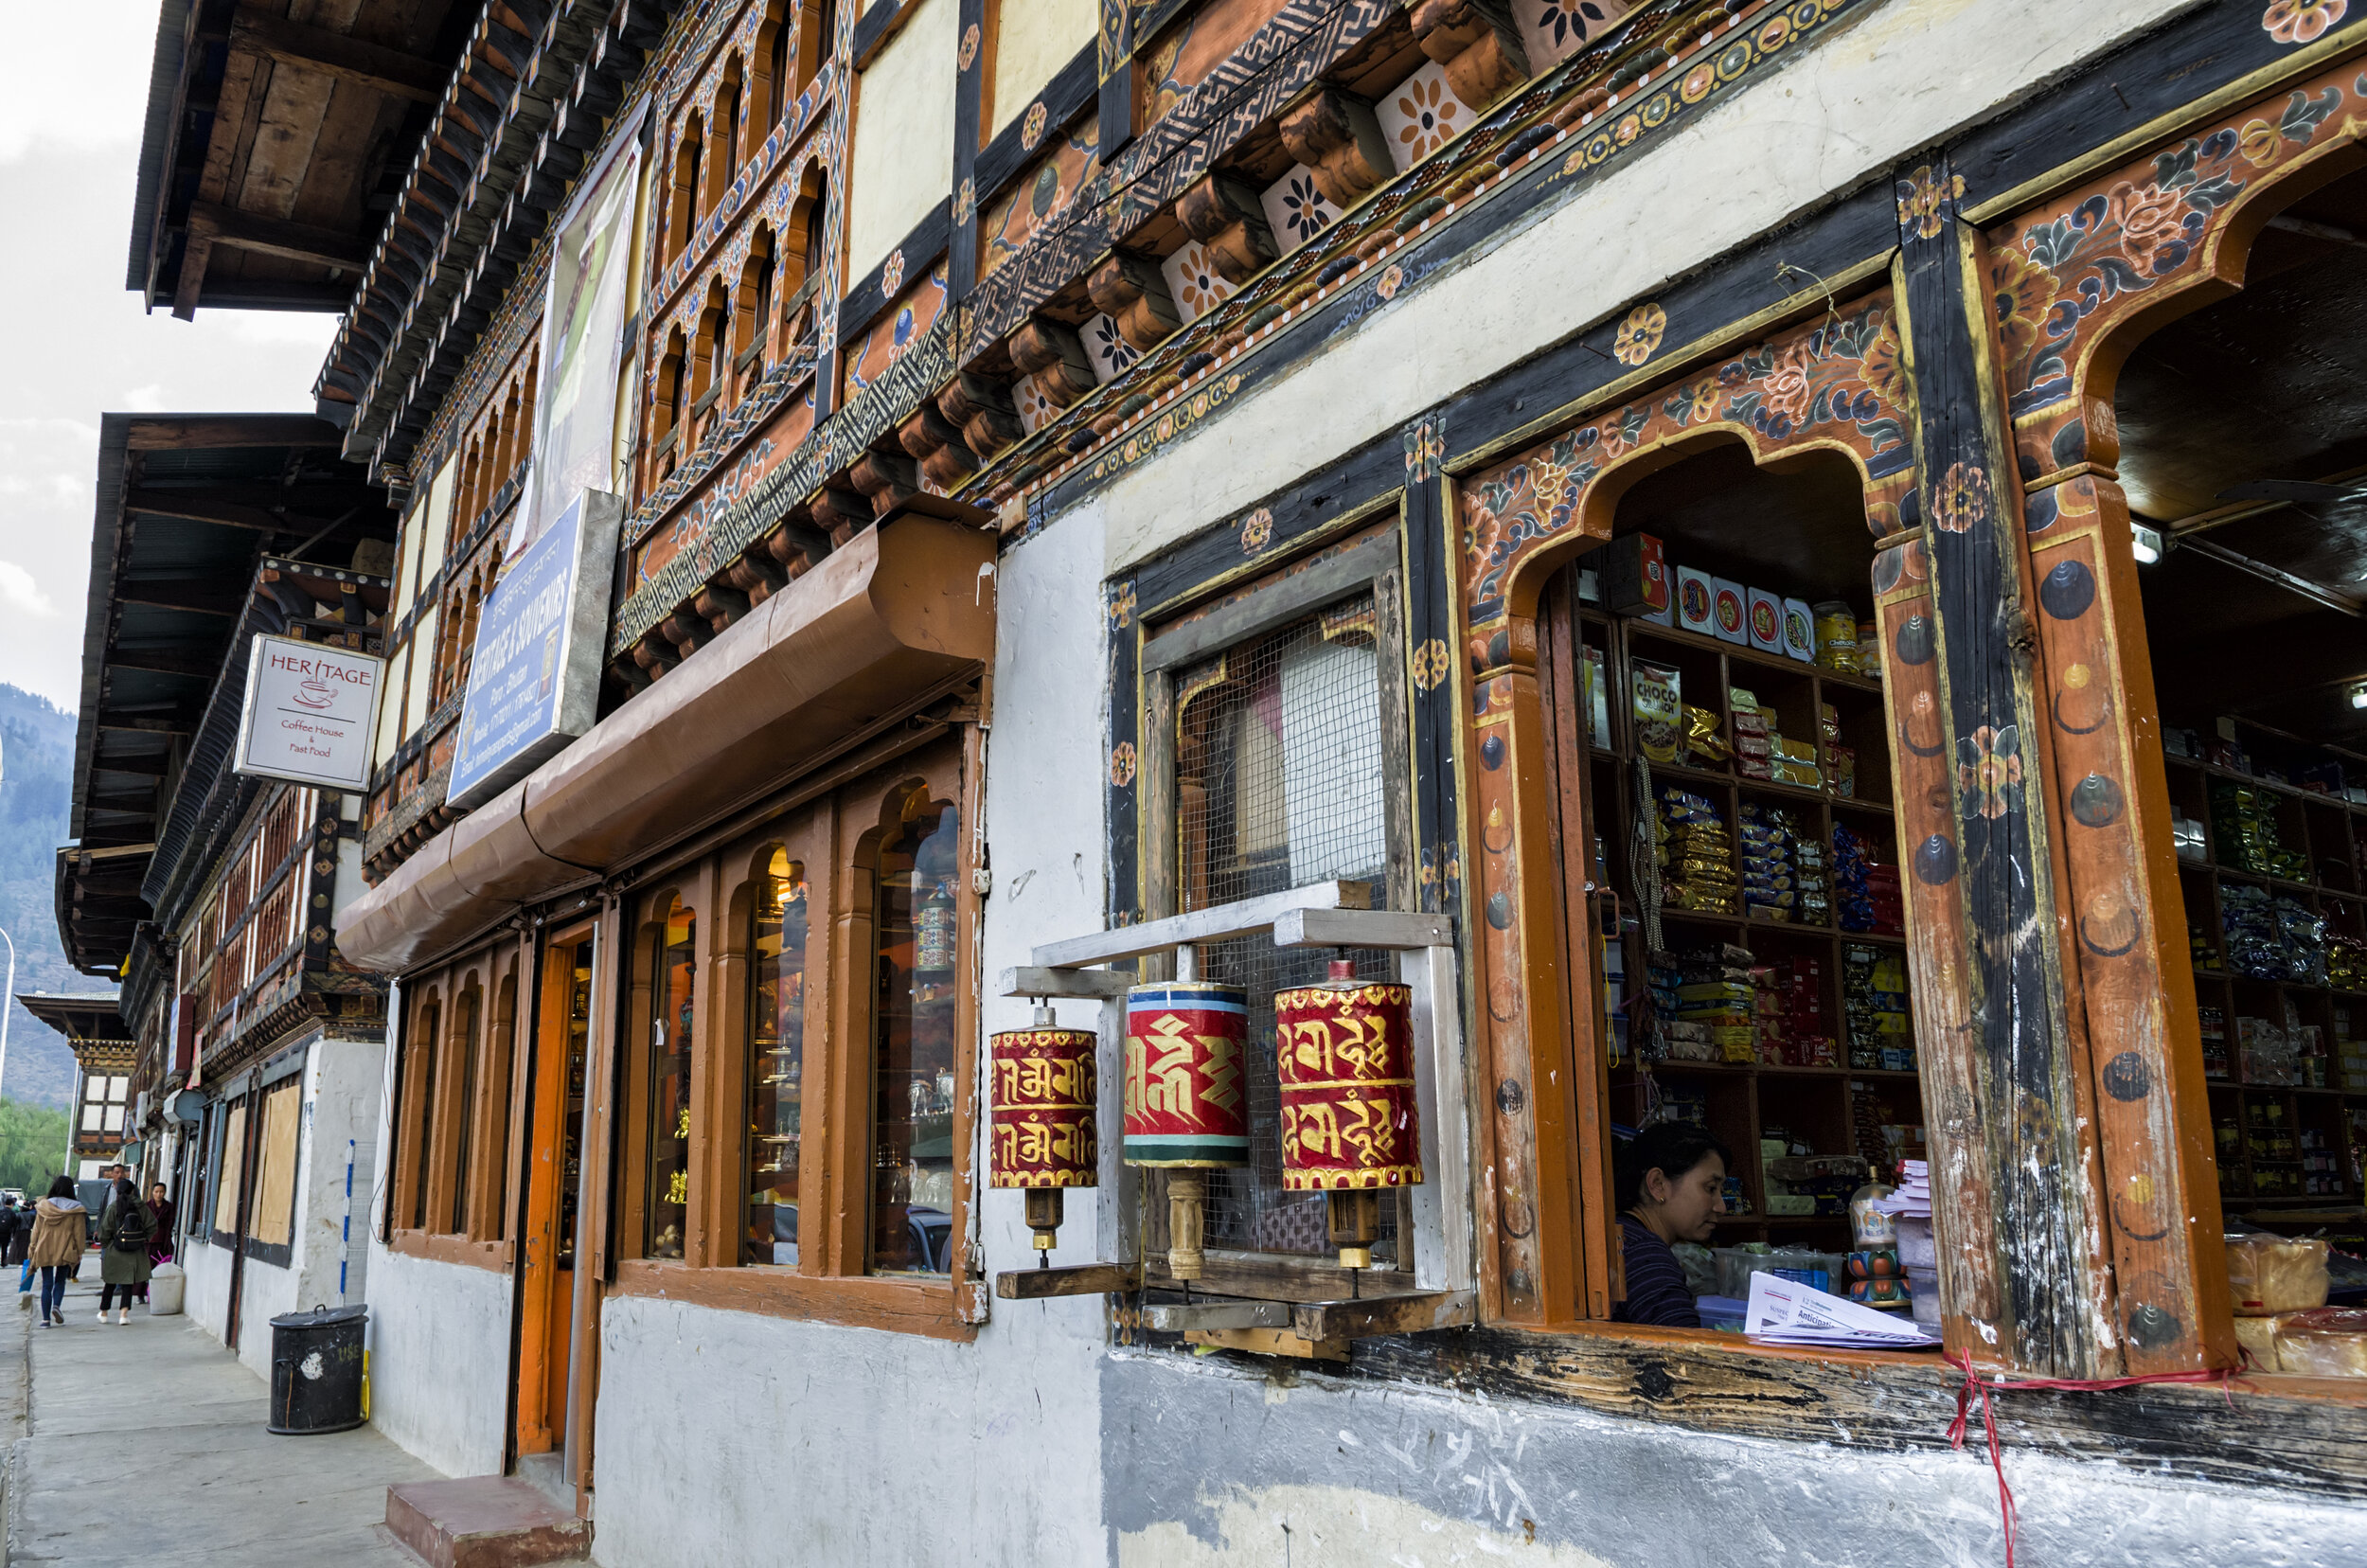 An example of the wood work typical at Paro restaurants.